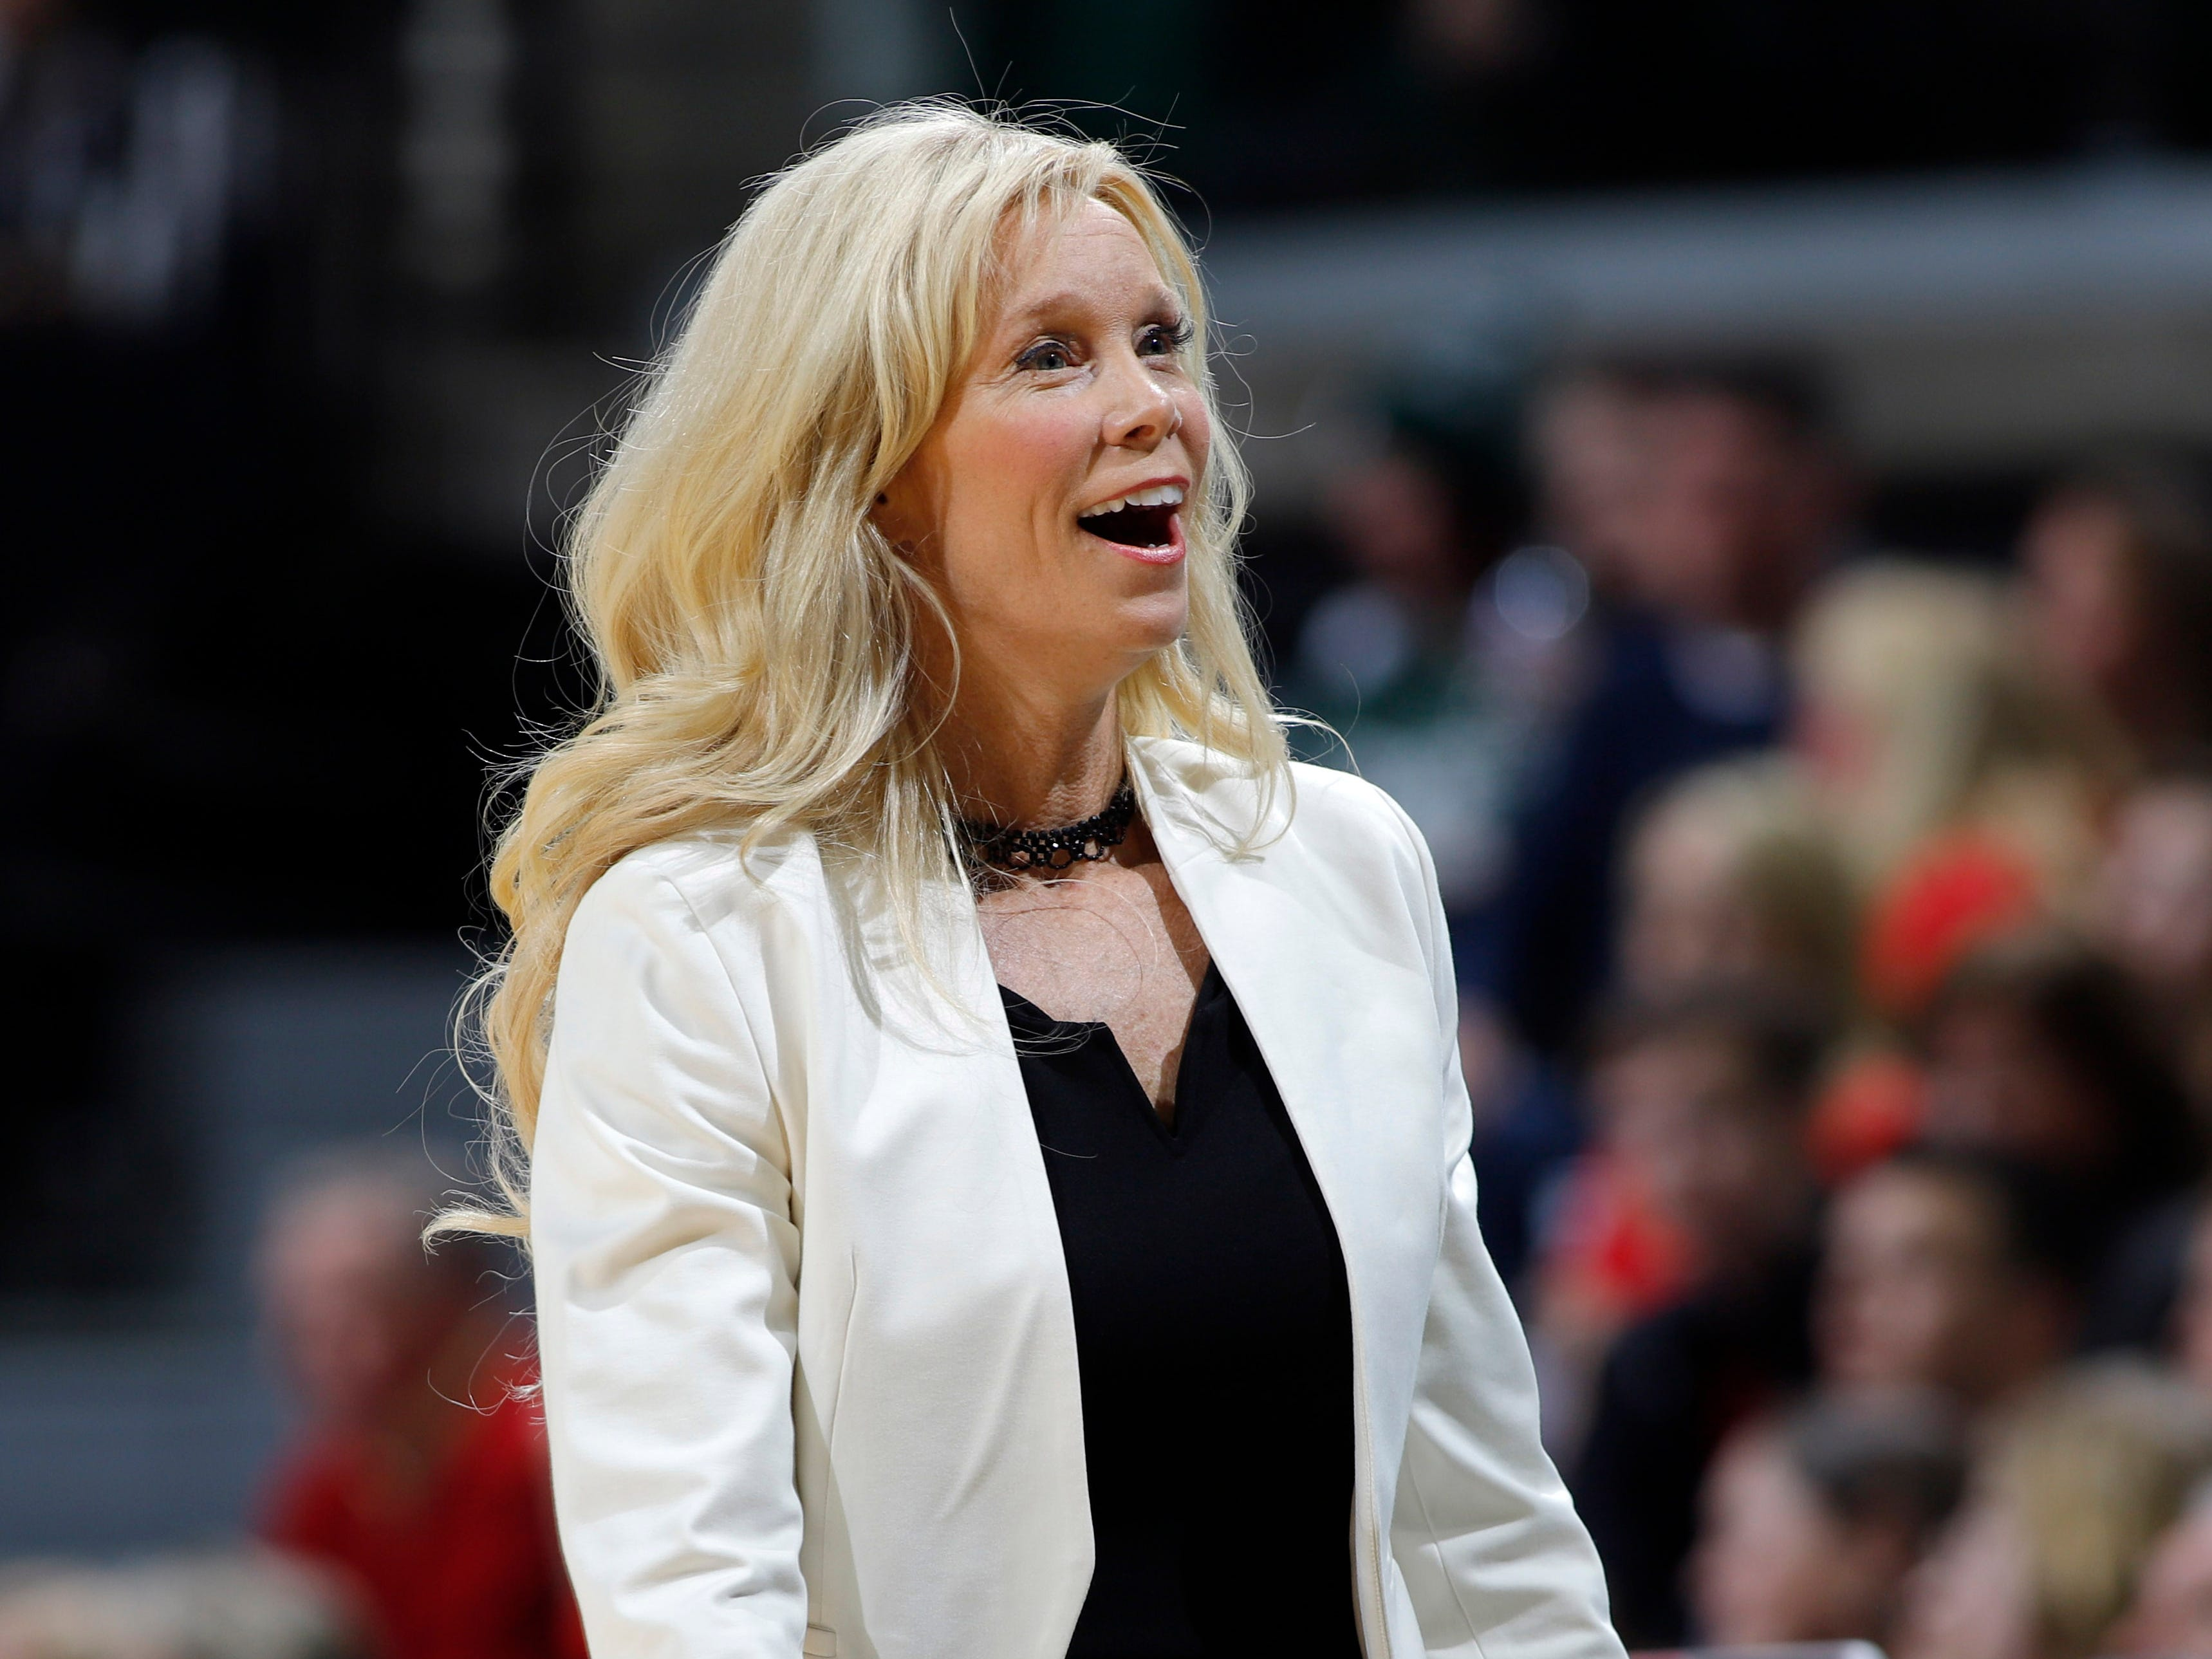 Michigan State coach Suzy Merchant reacts to a call during the game against Maryland, Thursday, Jan. 17, 2019, in East Lansing, Mich.